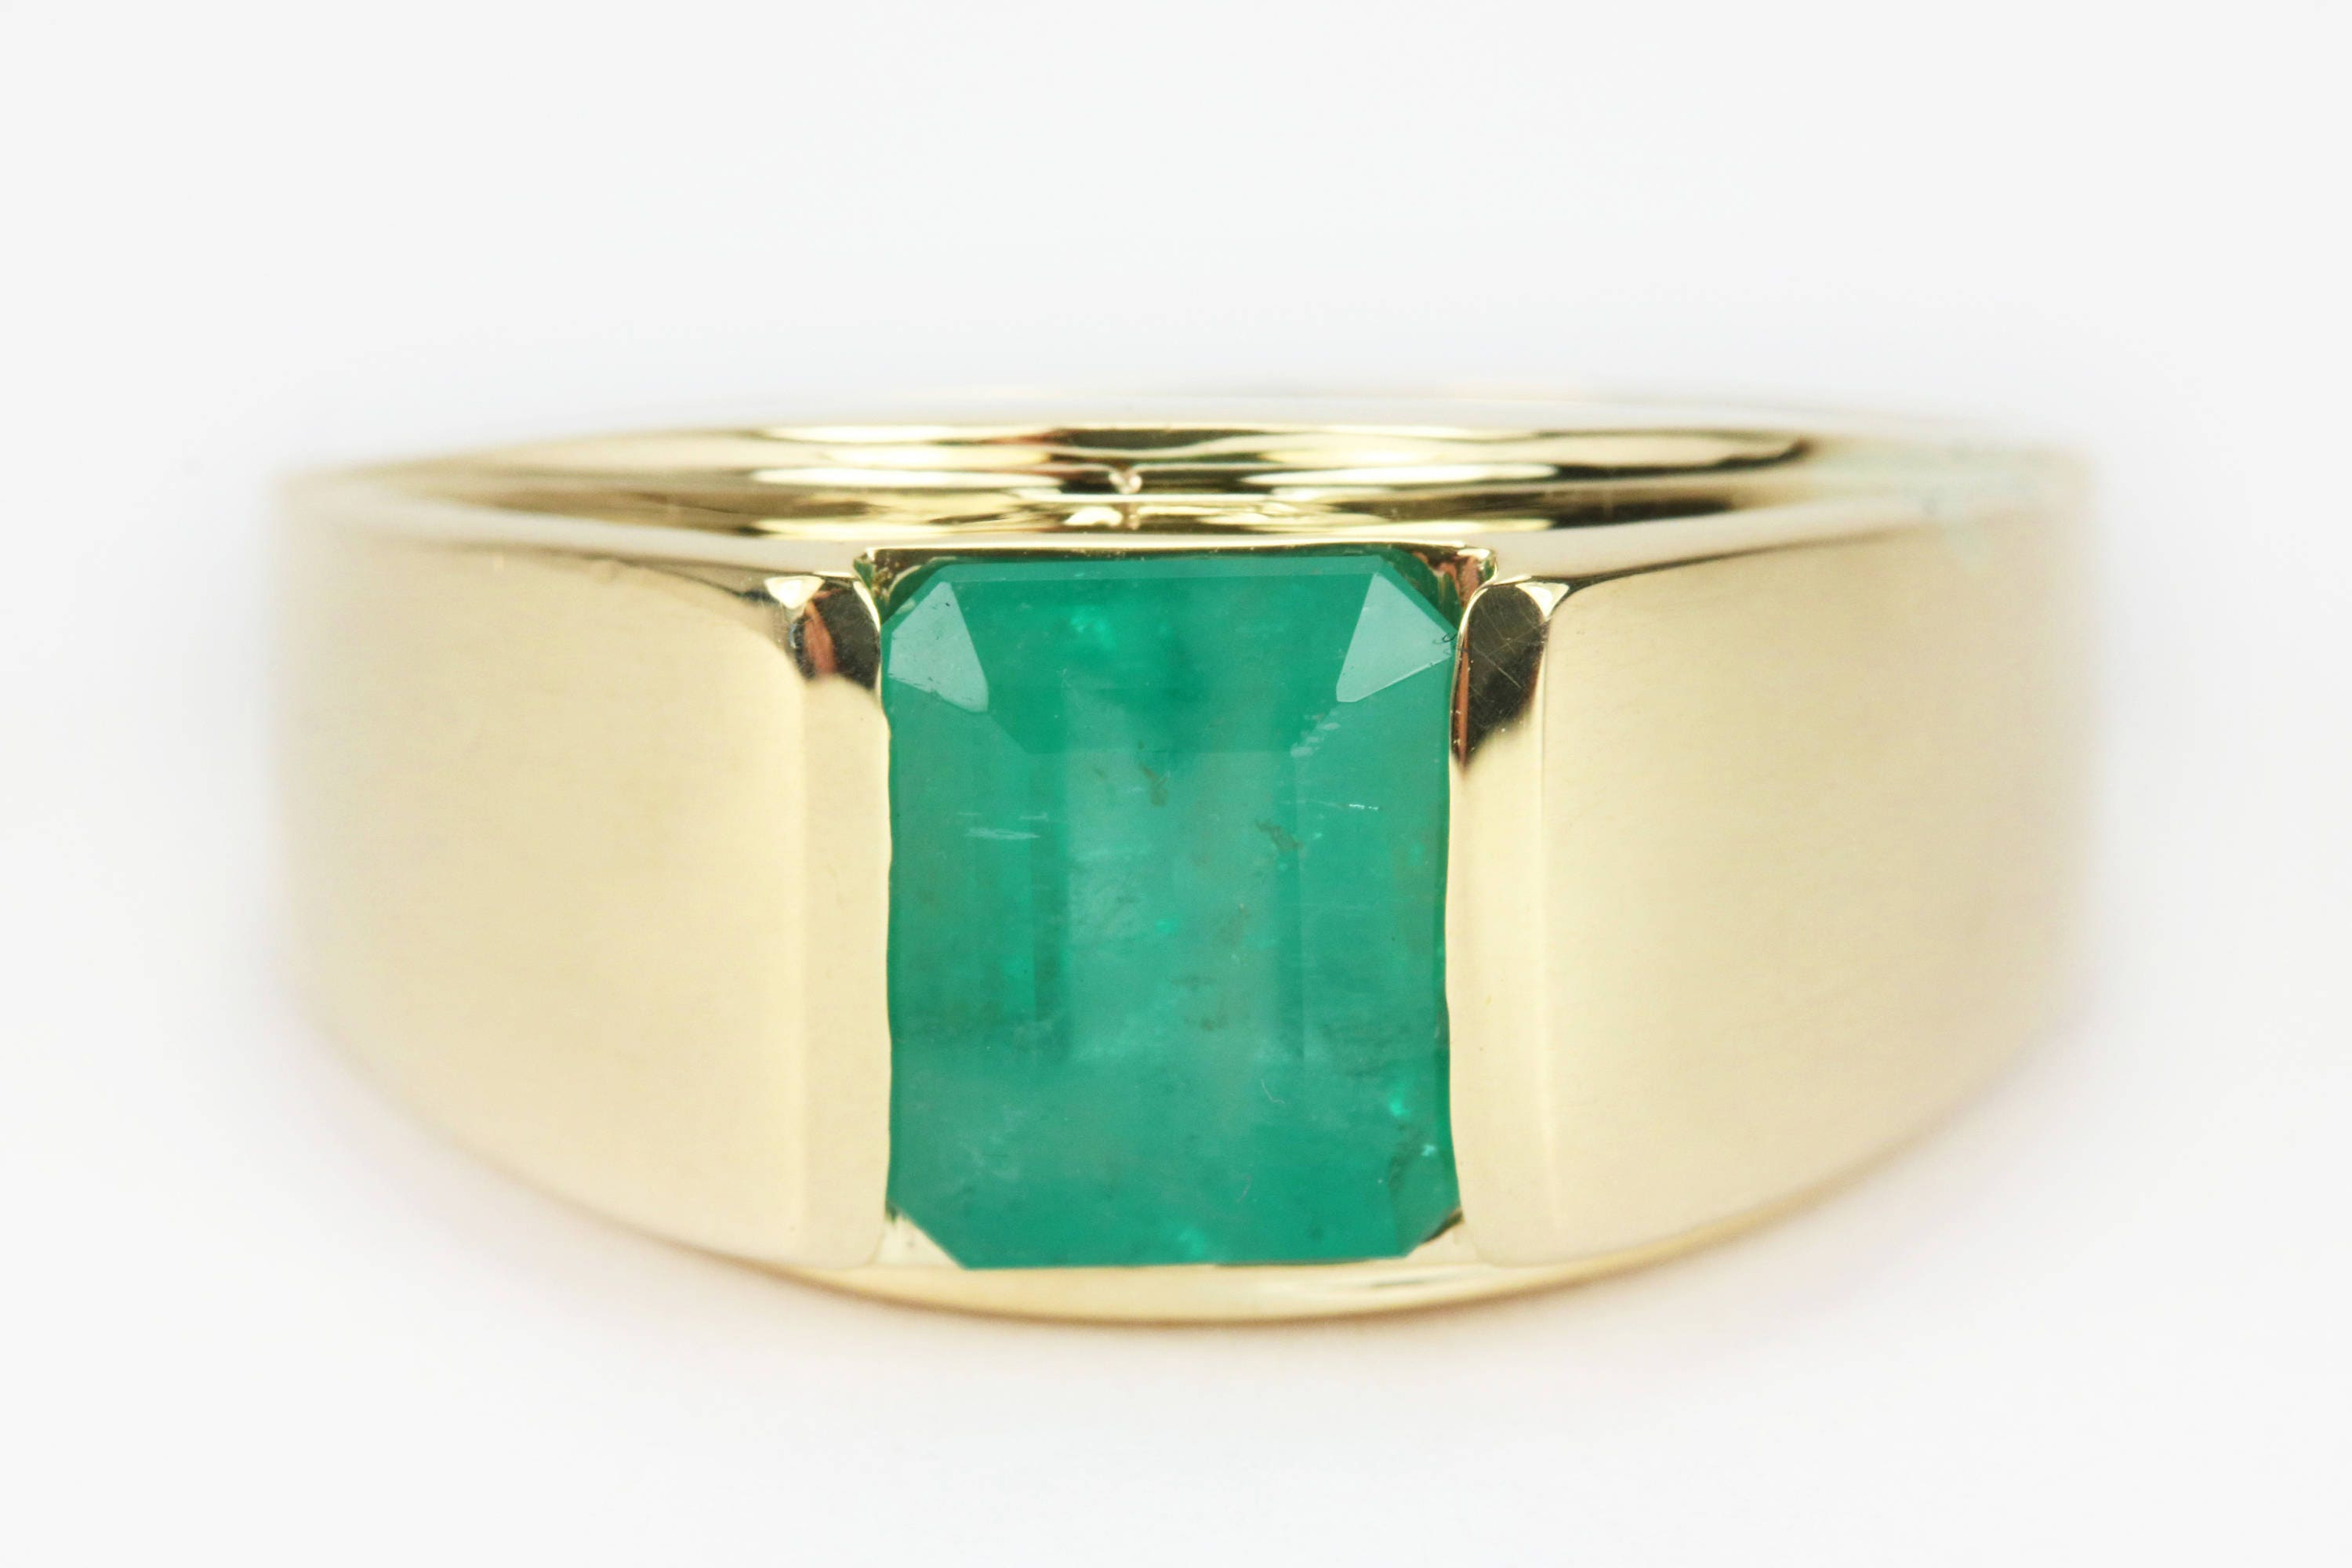 yellow emerald gabrielle product very ring wedding gold mens architectural select